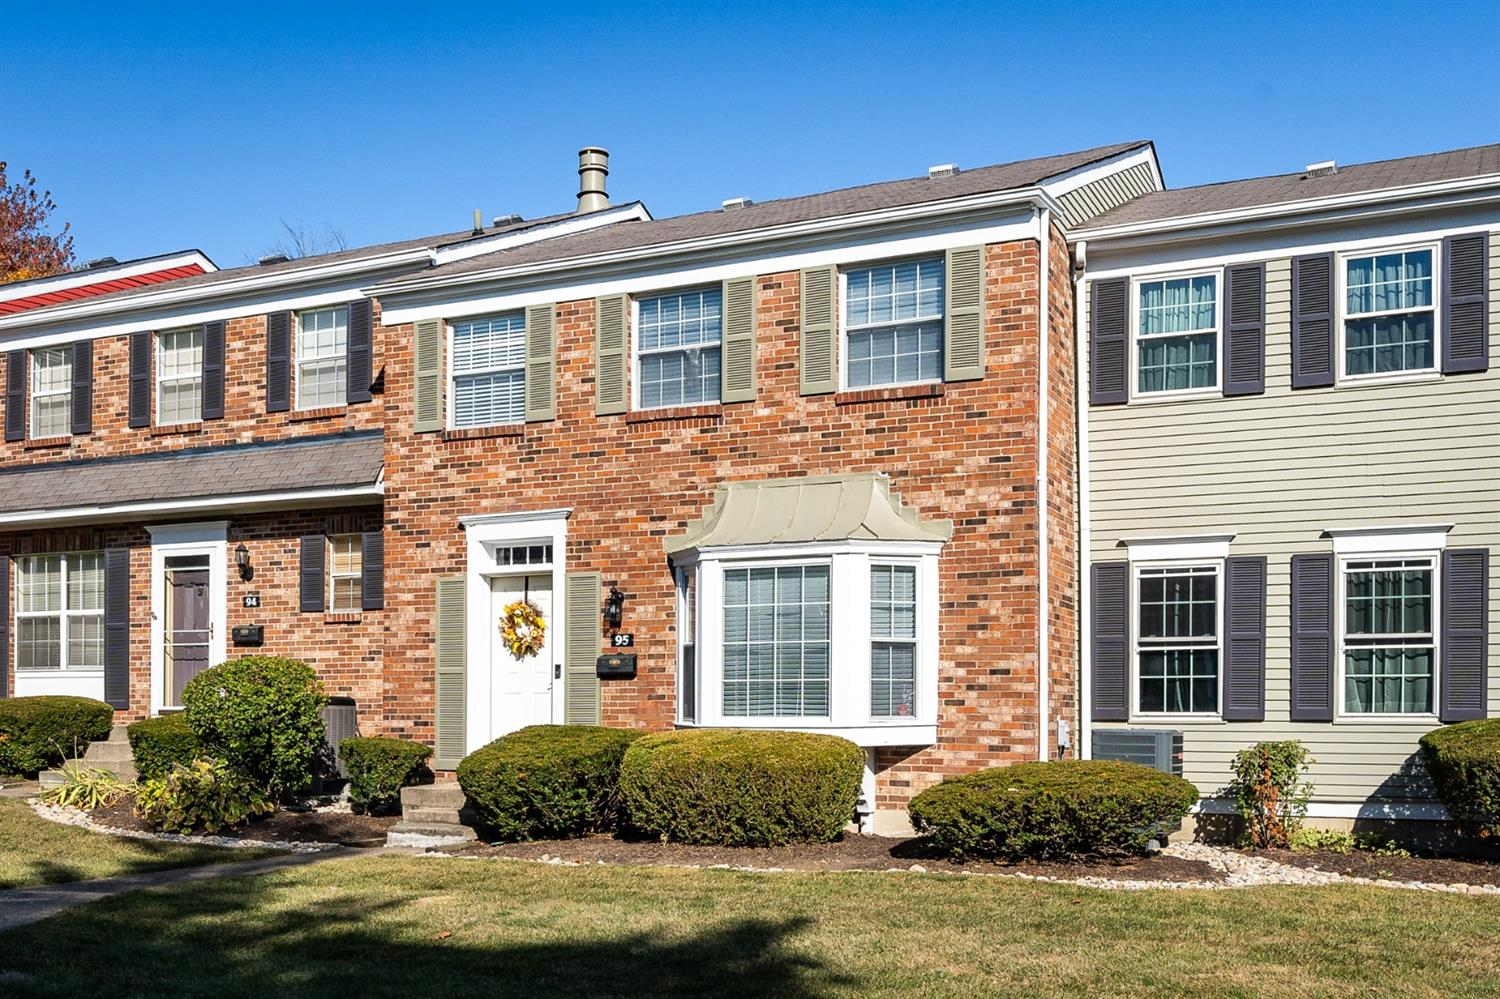 Property for sale at 95 Applewood Drive, Fairfield,  Ohio 45014